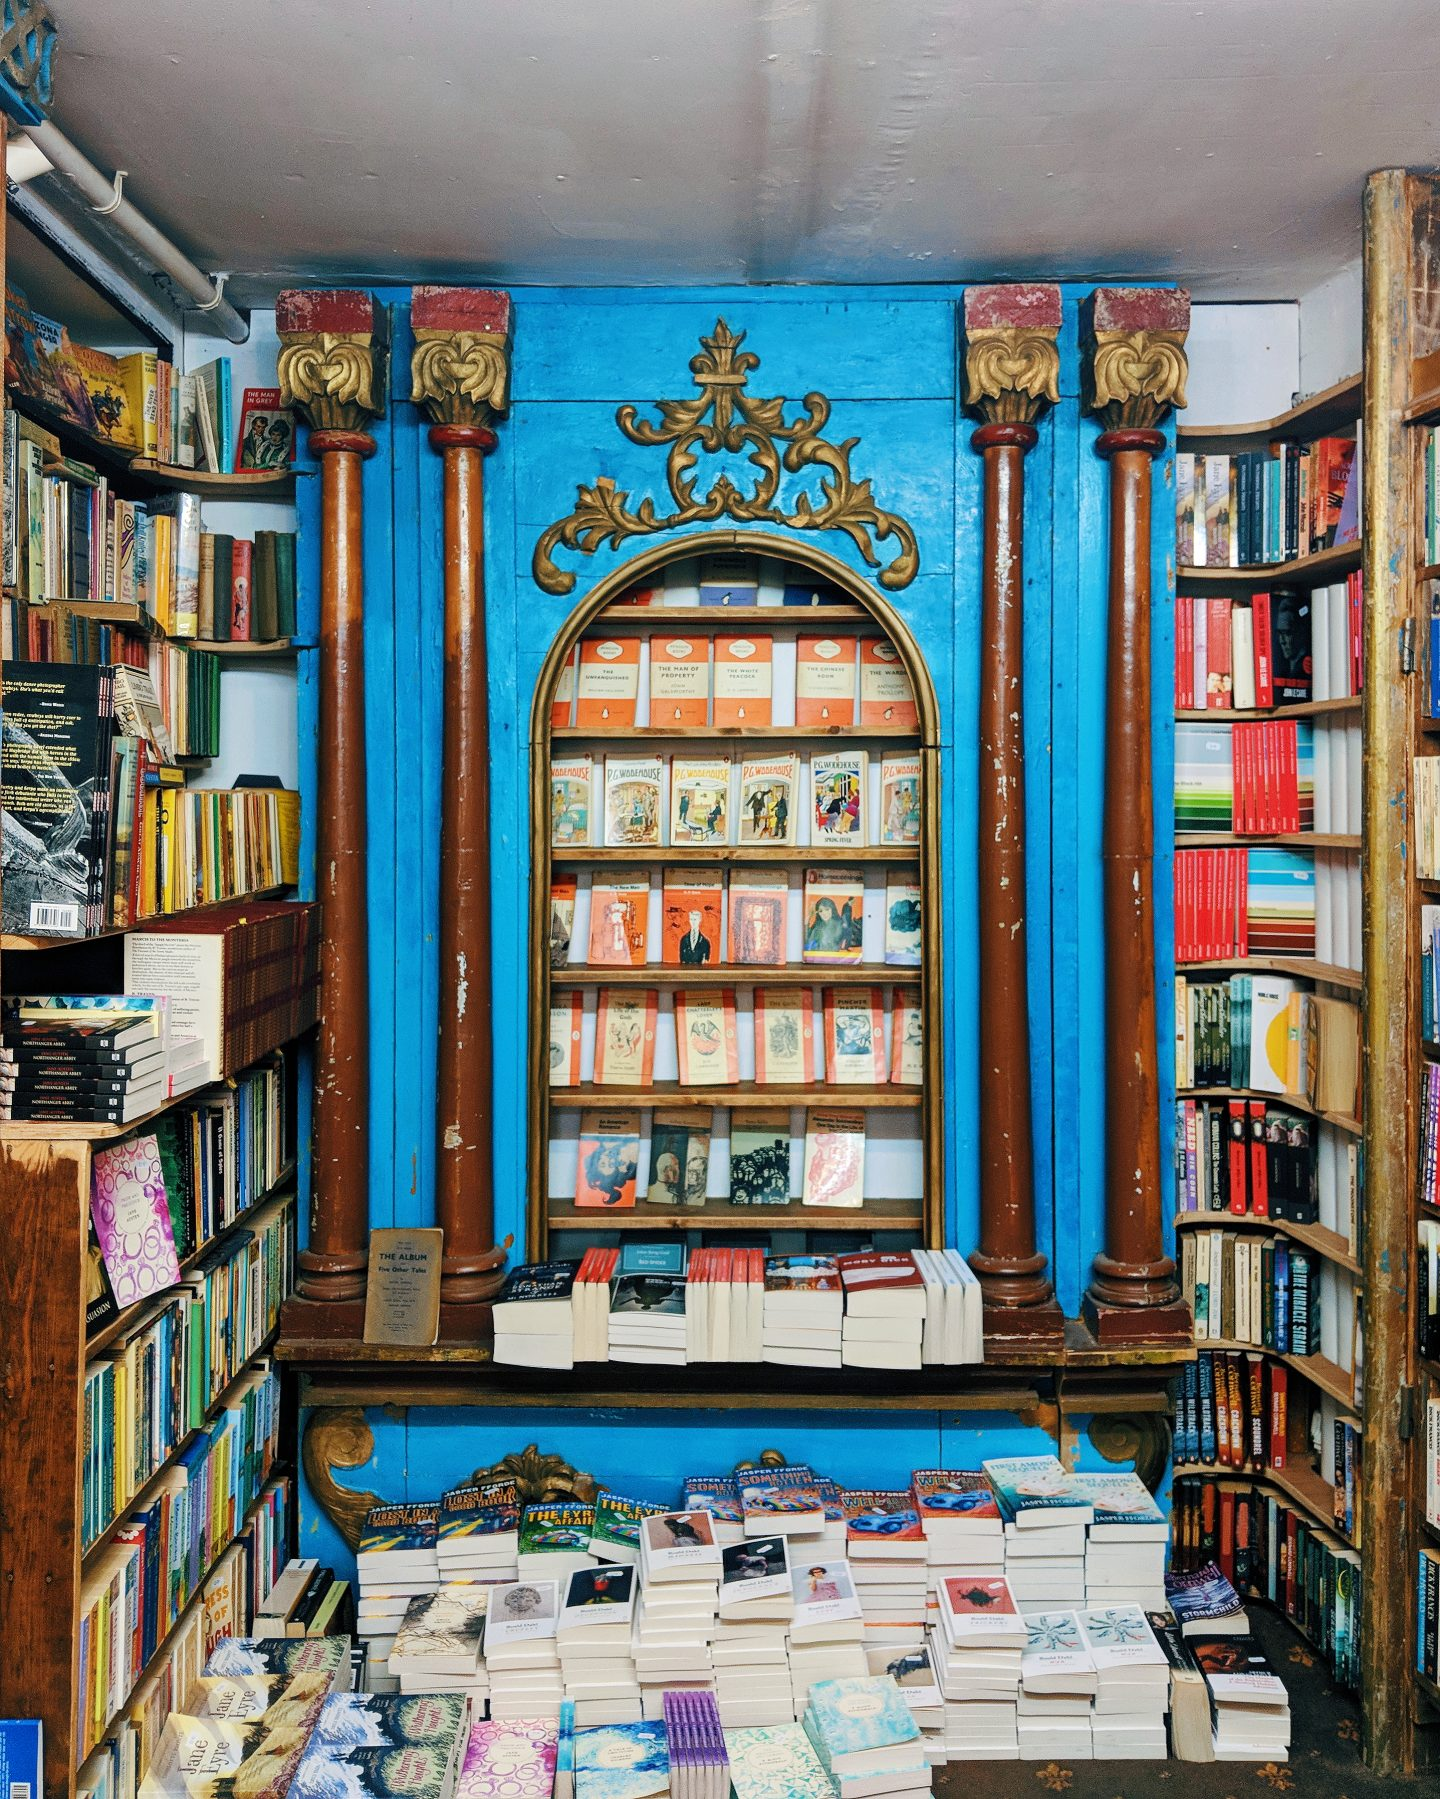 The Vintage Penguin bookshelves at Addyman Books